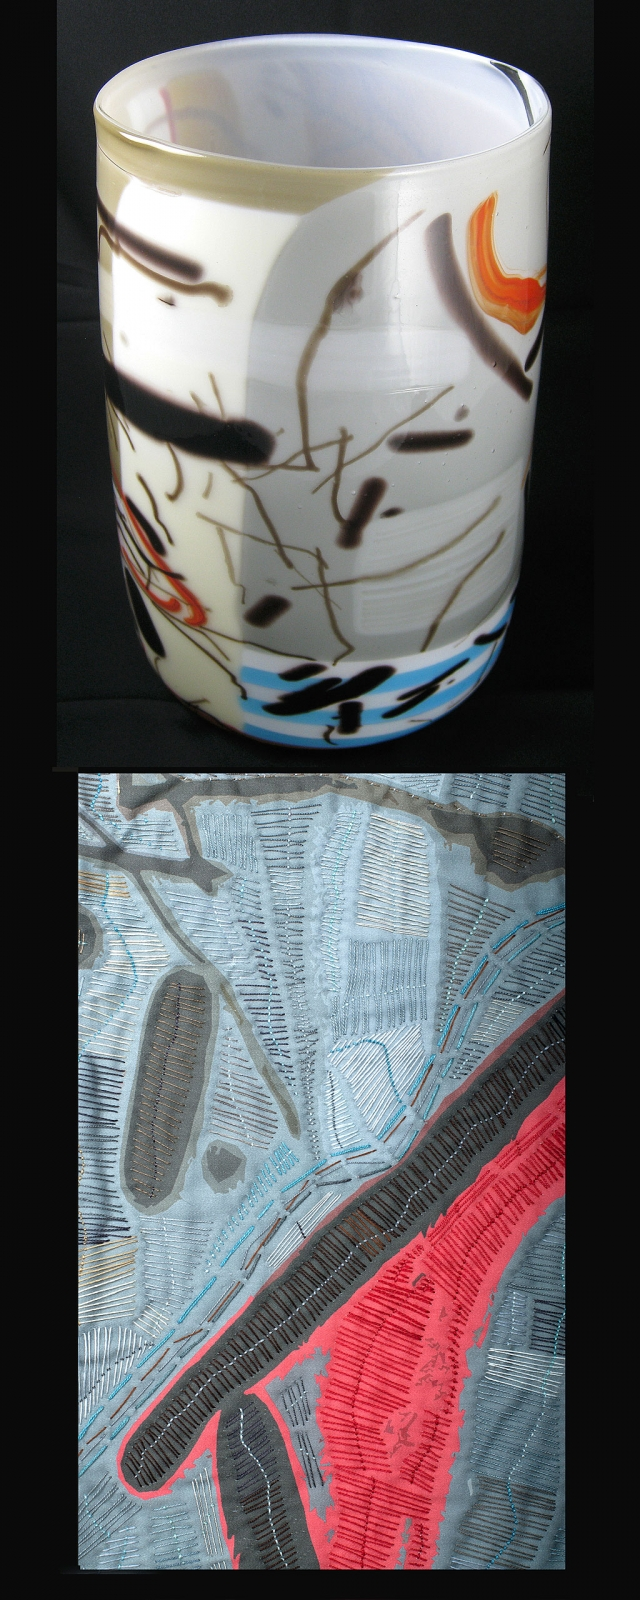 Glass art vase and photographed abstract design on digital print. Both works by Pamela Price Klebaum